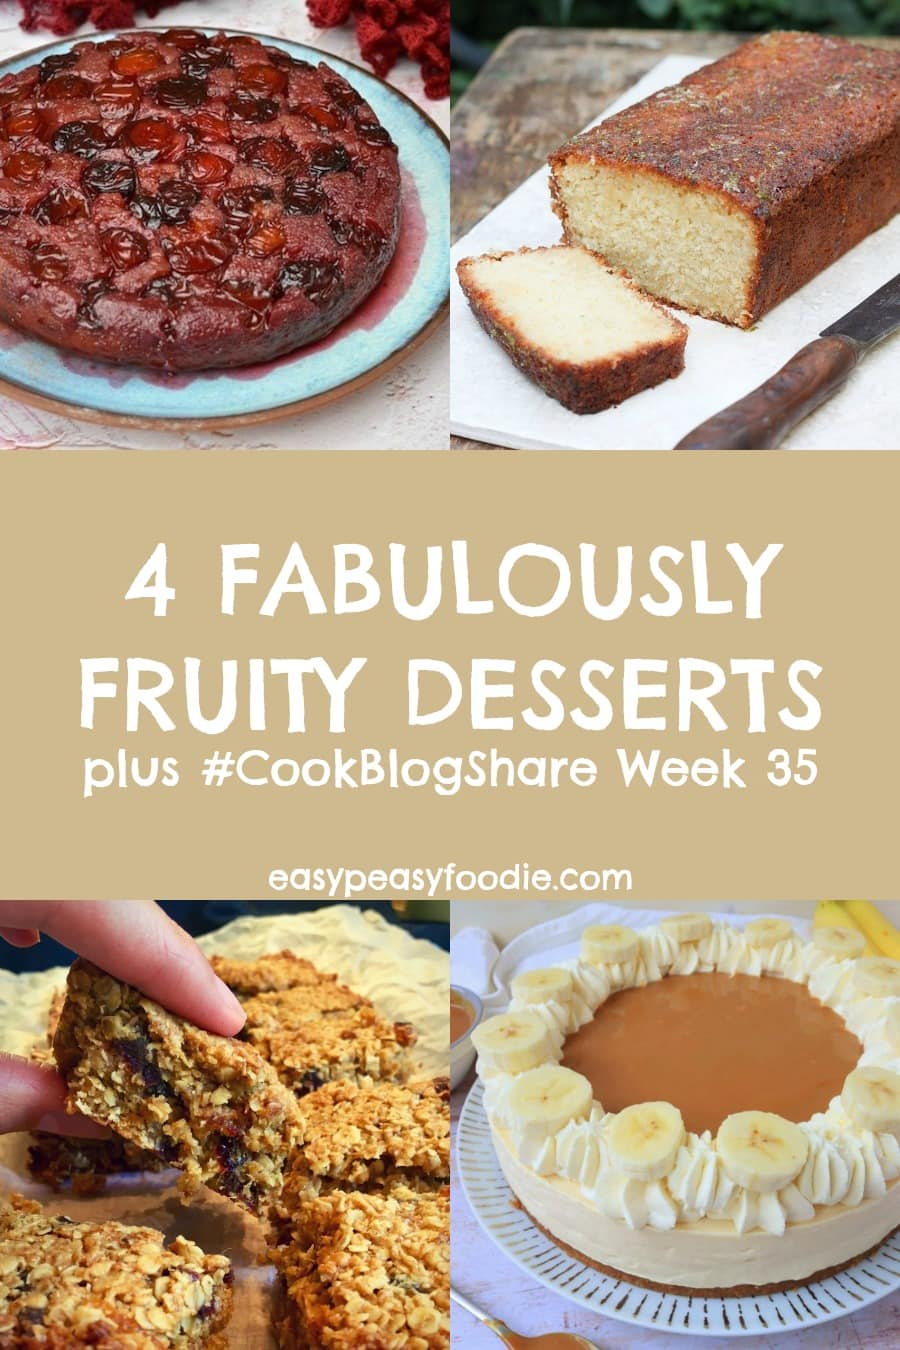 Celebrate the end of summer with these 4 Fabulously Fruity Desserts. Plus Find the linky for #CookBlogShare Week 35! #dessert #fruitdessert #fruit #lime #coconut #banana #plums #dates #banoffeepie #banoffeecheesecake #flapjack #loafcake #upsidedowncake #easyrecipes #easybakes #easypeasyfoodie